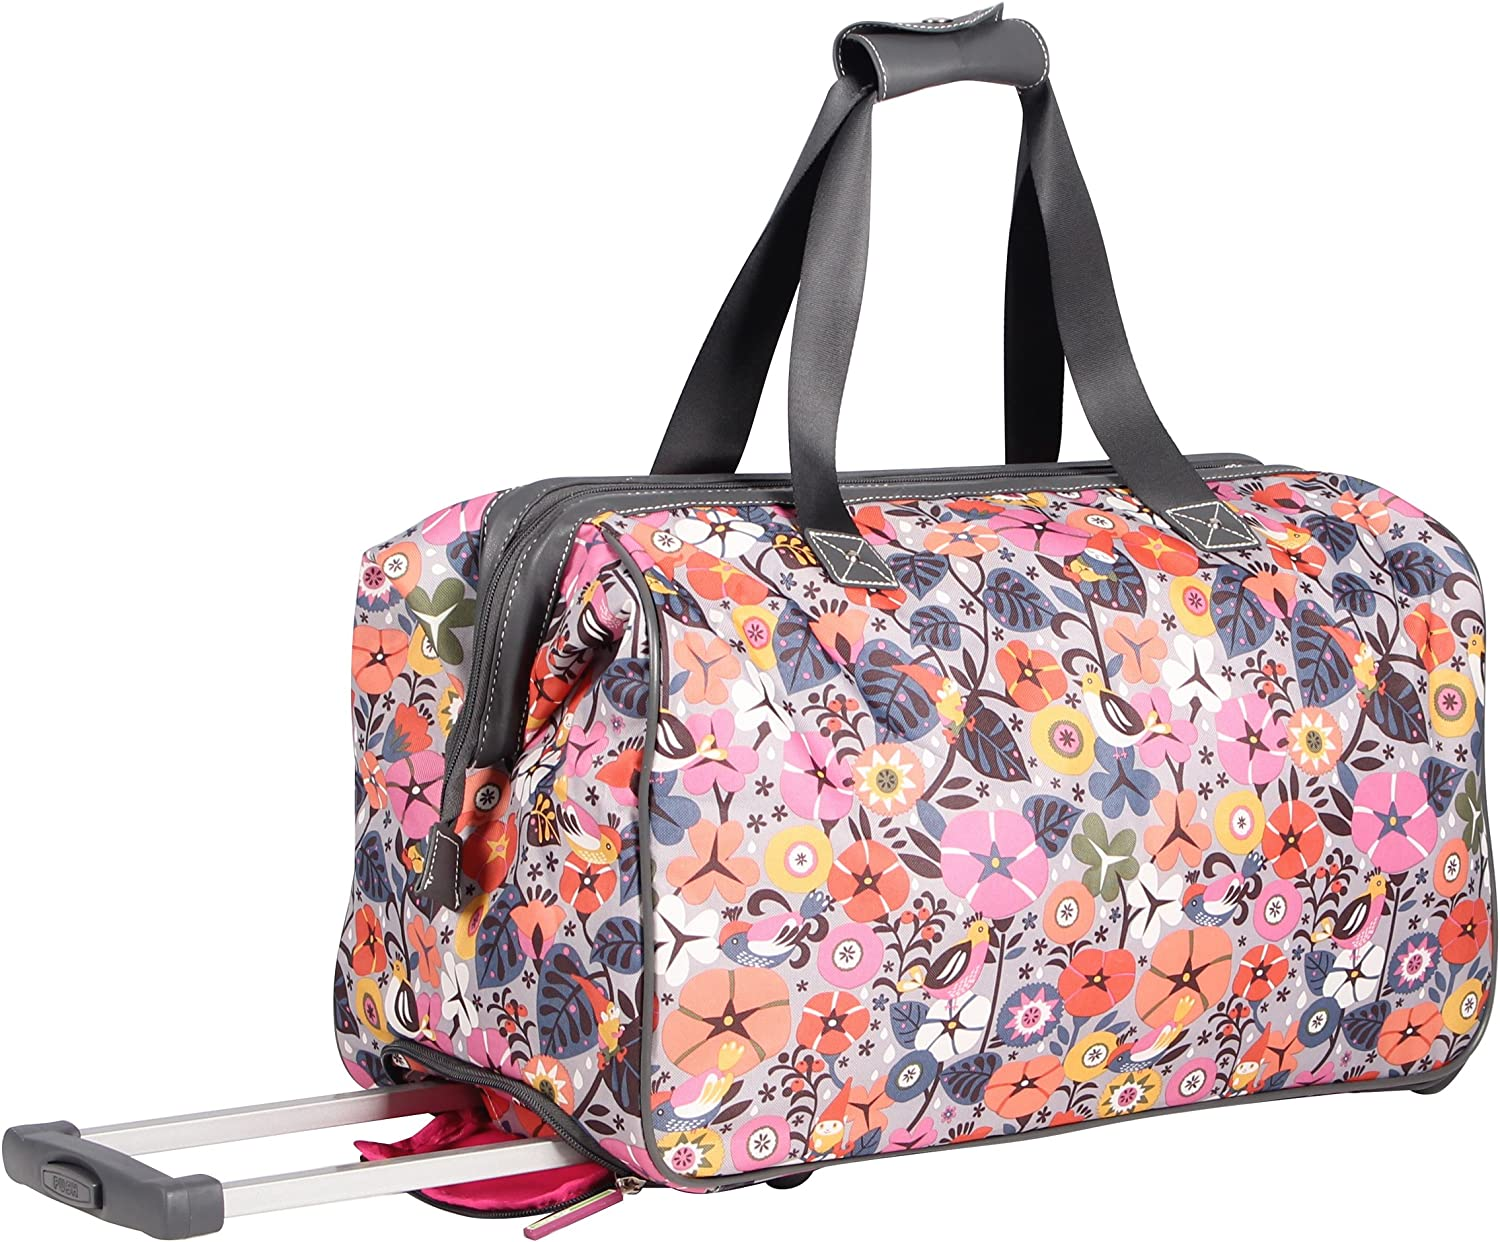 Lily Bloom Luggage Designer Pattern Suitcase Wheeled Duffel Carry On Bag 22in, Raking It In